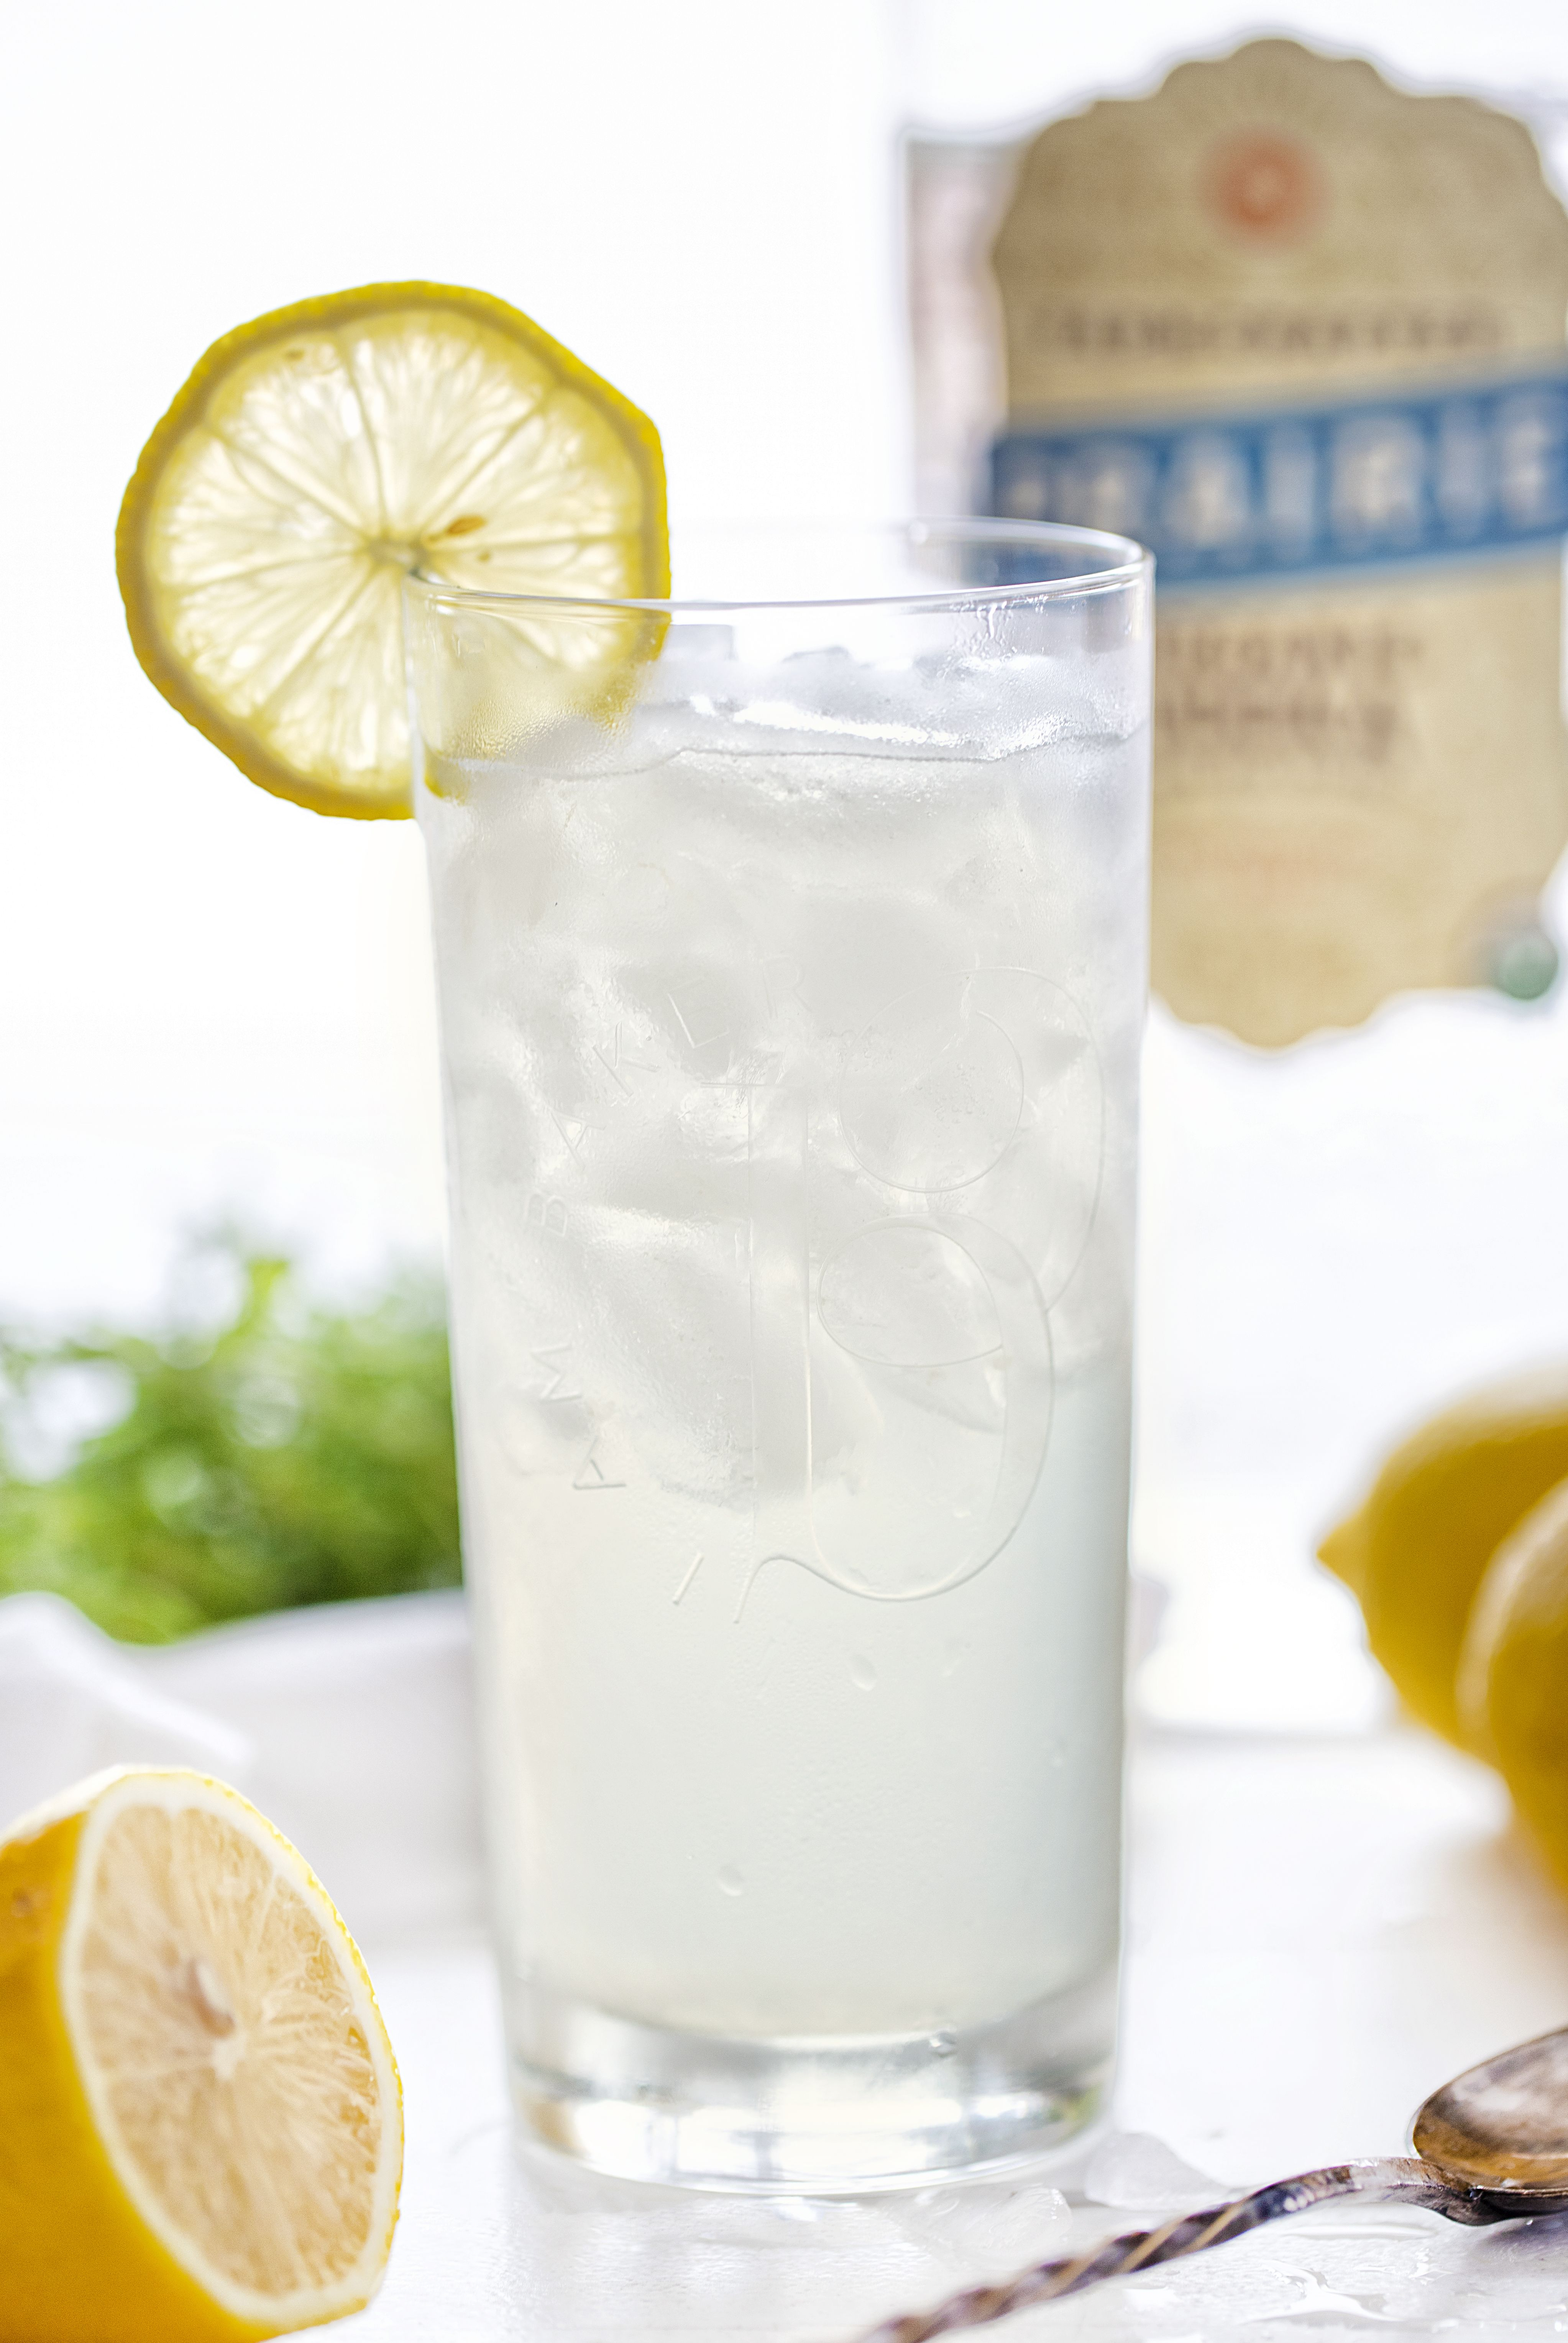 Homemade Lemonade with the perfect amount of Vodka is the best way to beat the heat this summer! This Vodka Lemonade is going to be your new favorite!